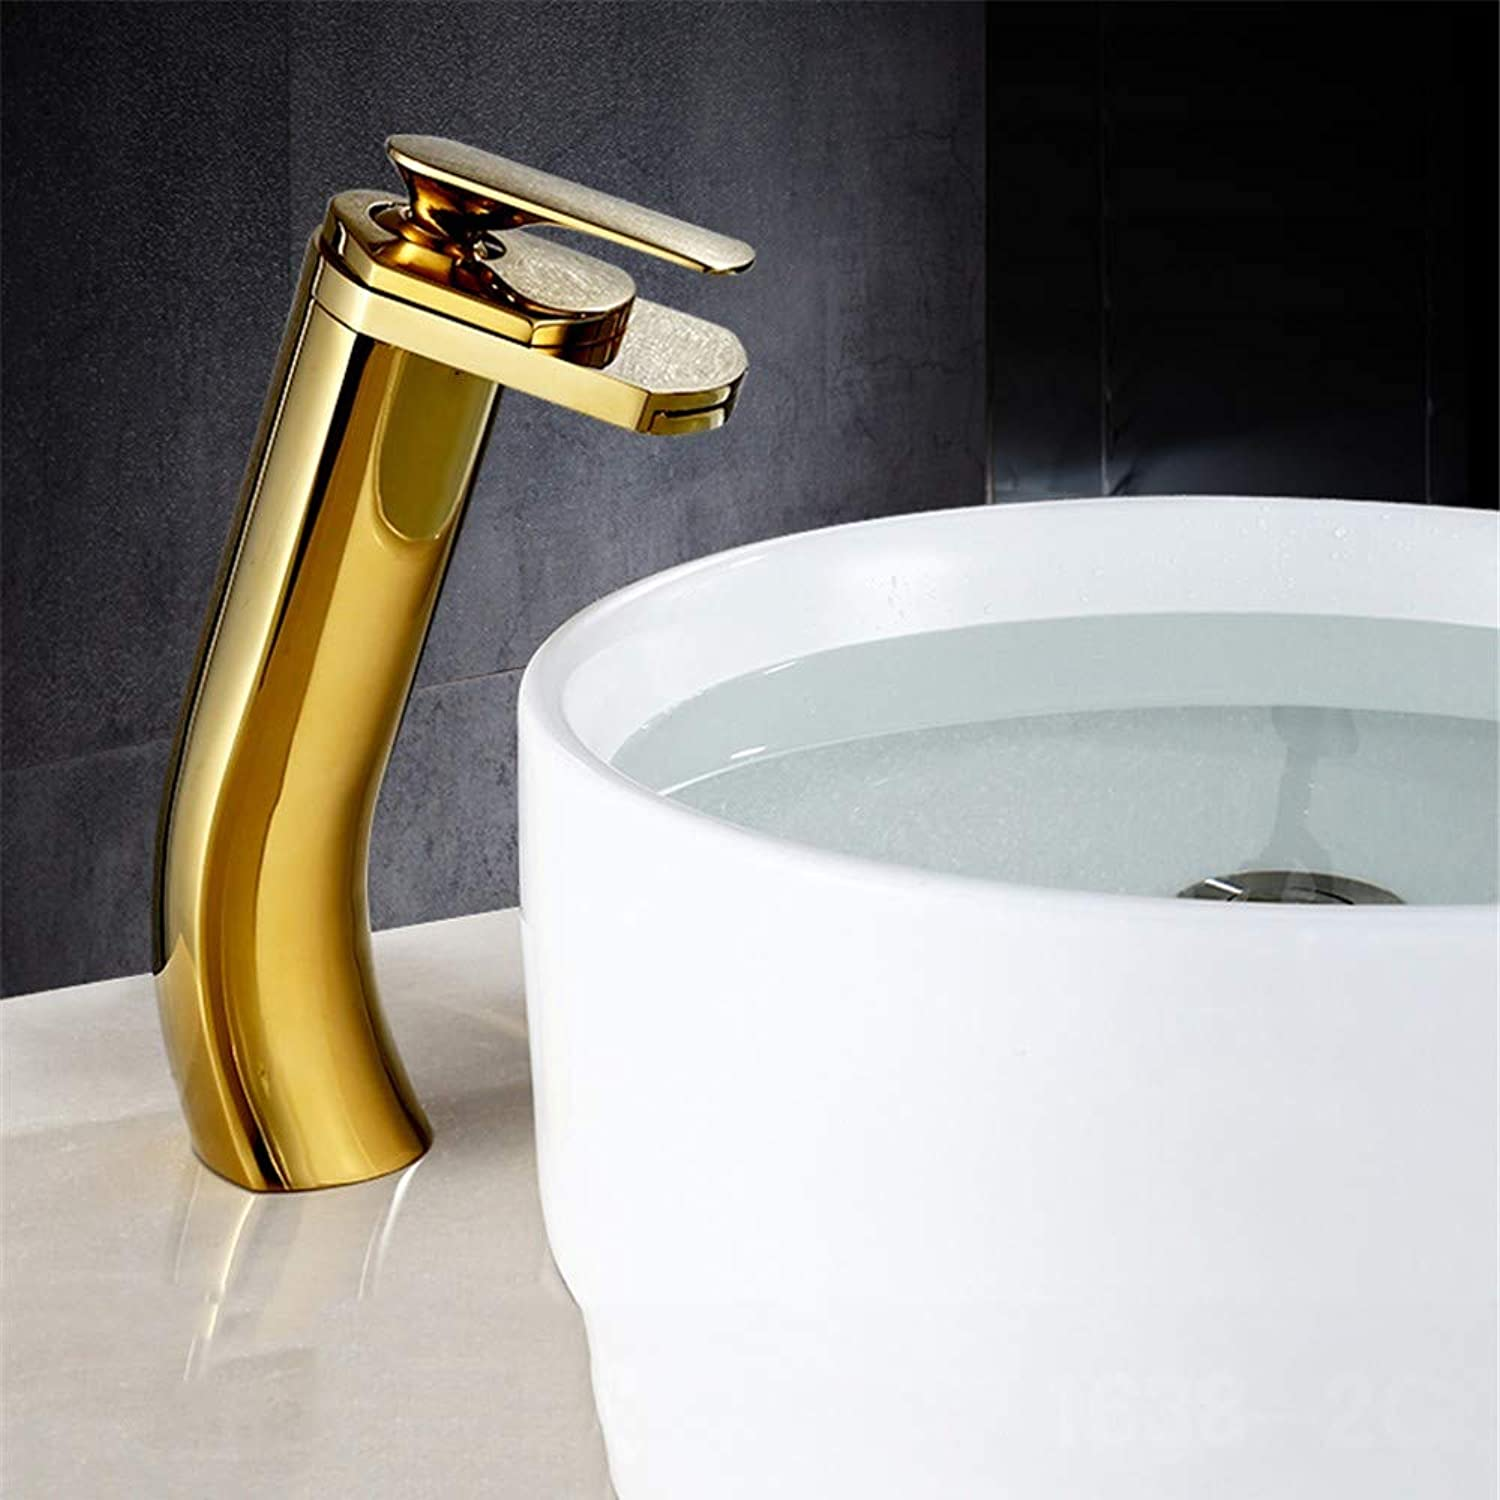 Waterfall Basin Faucet, Single Handle Faucet, All Copper hot and Cold Basin Faucet,B-Long